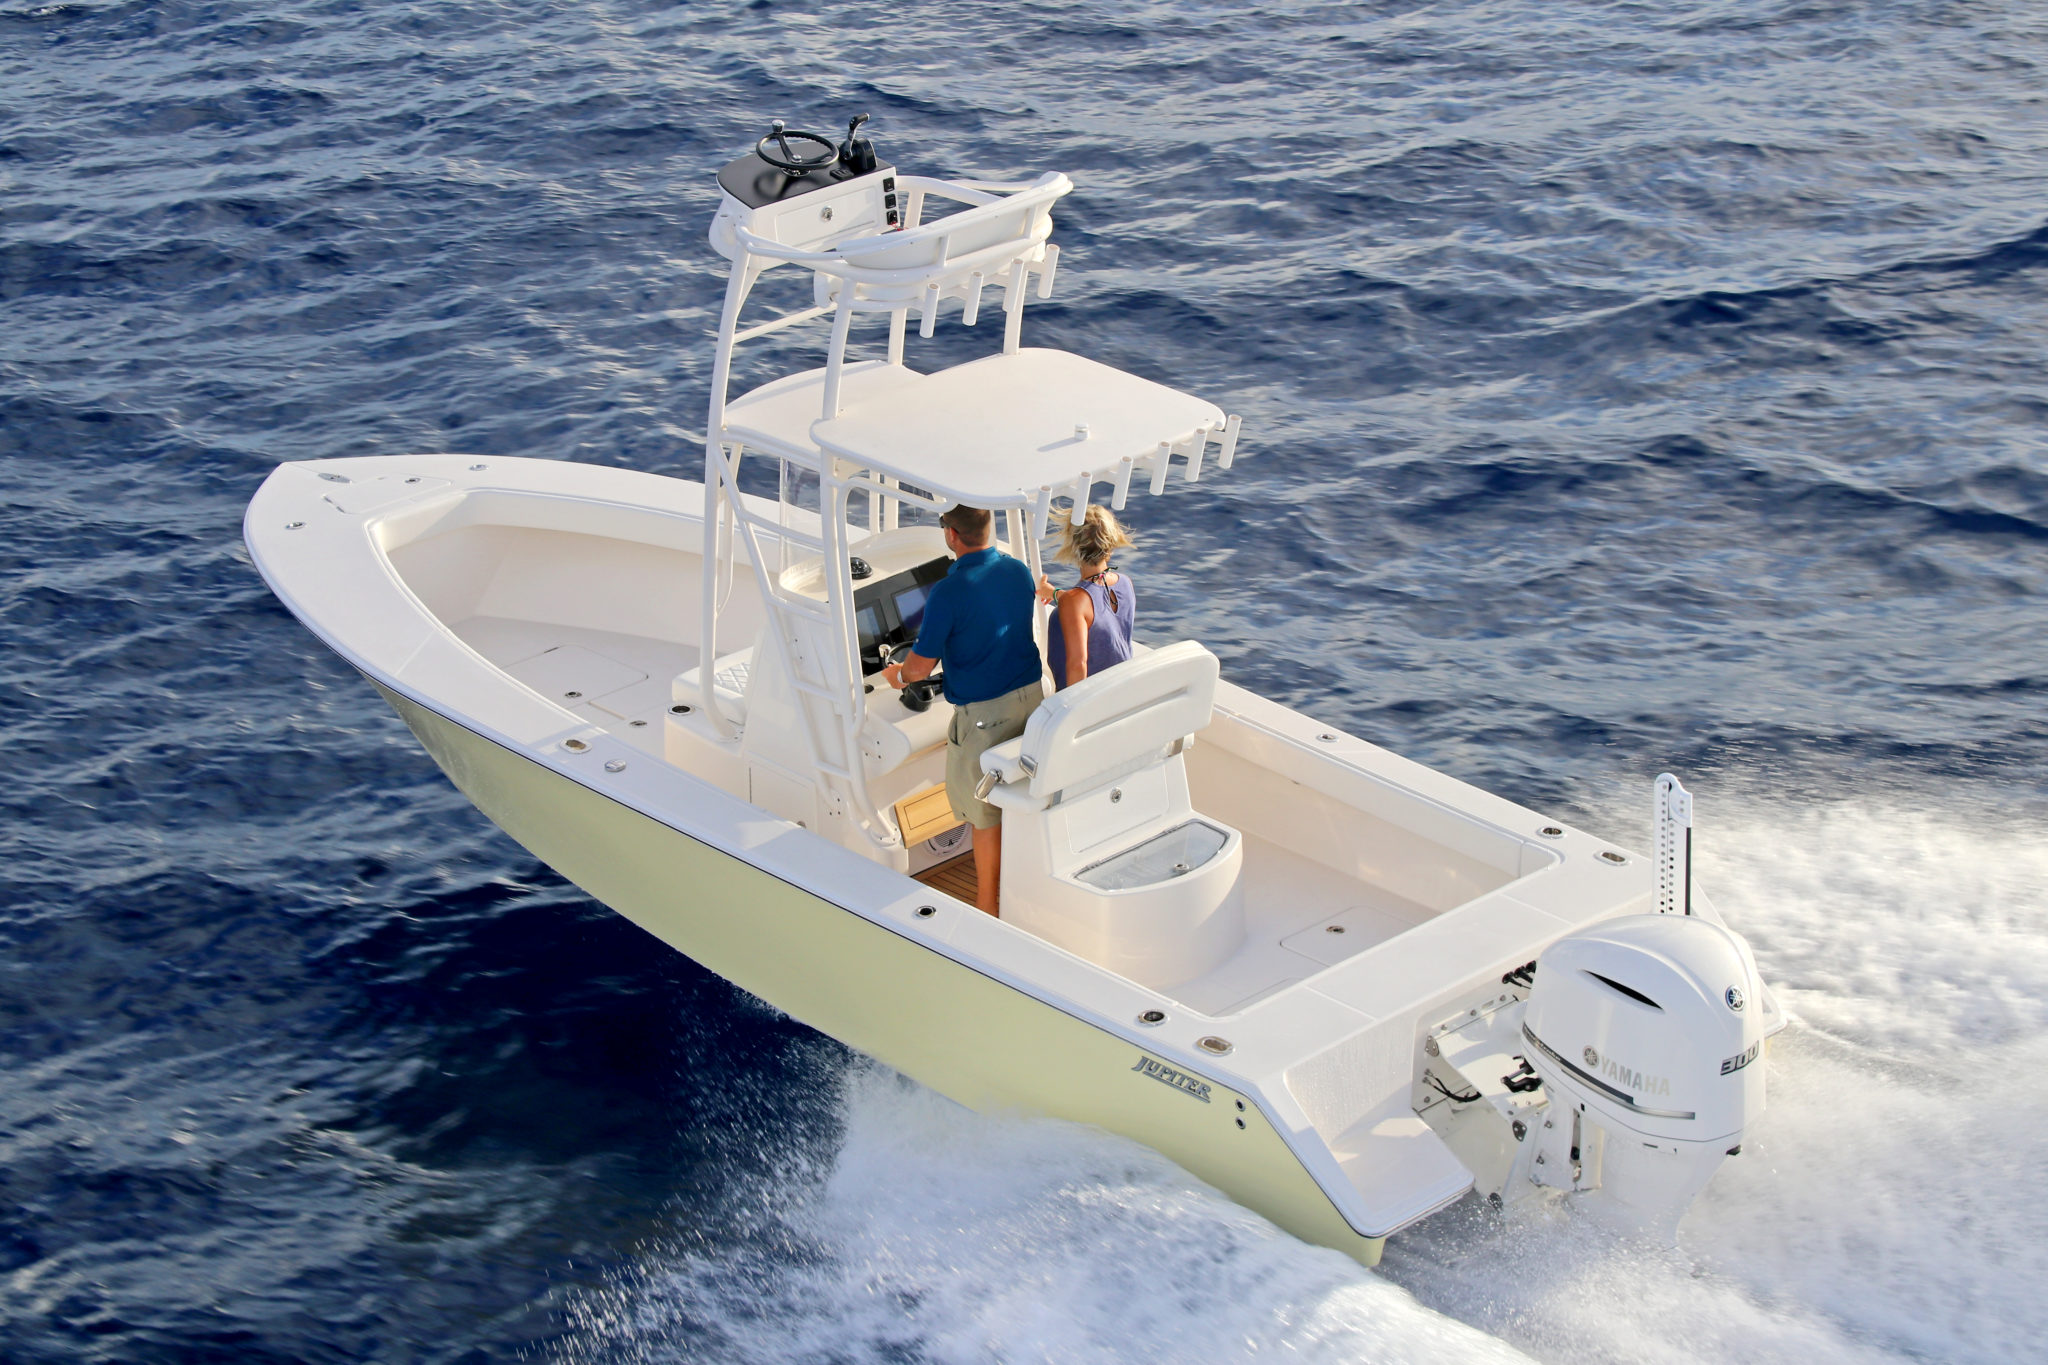 Jupiter 25 Bay Outermost Harbor Marine